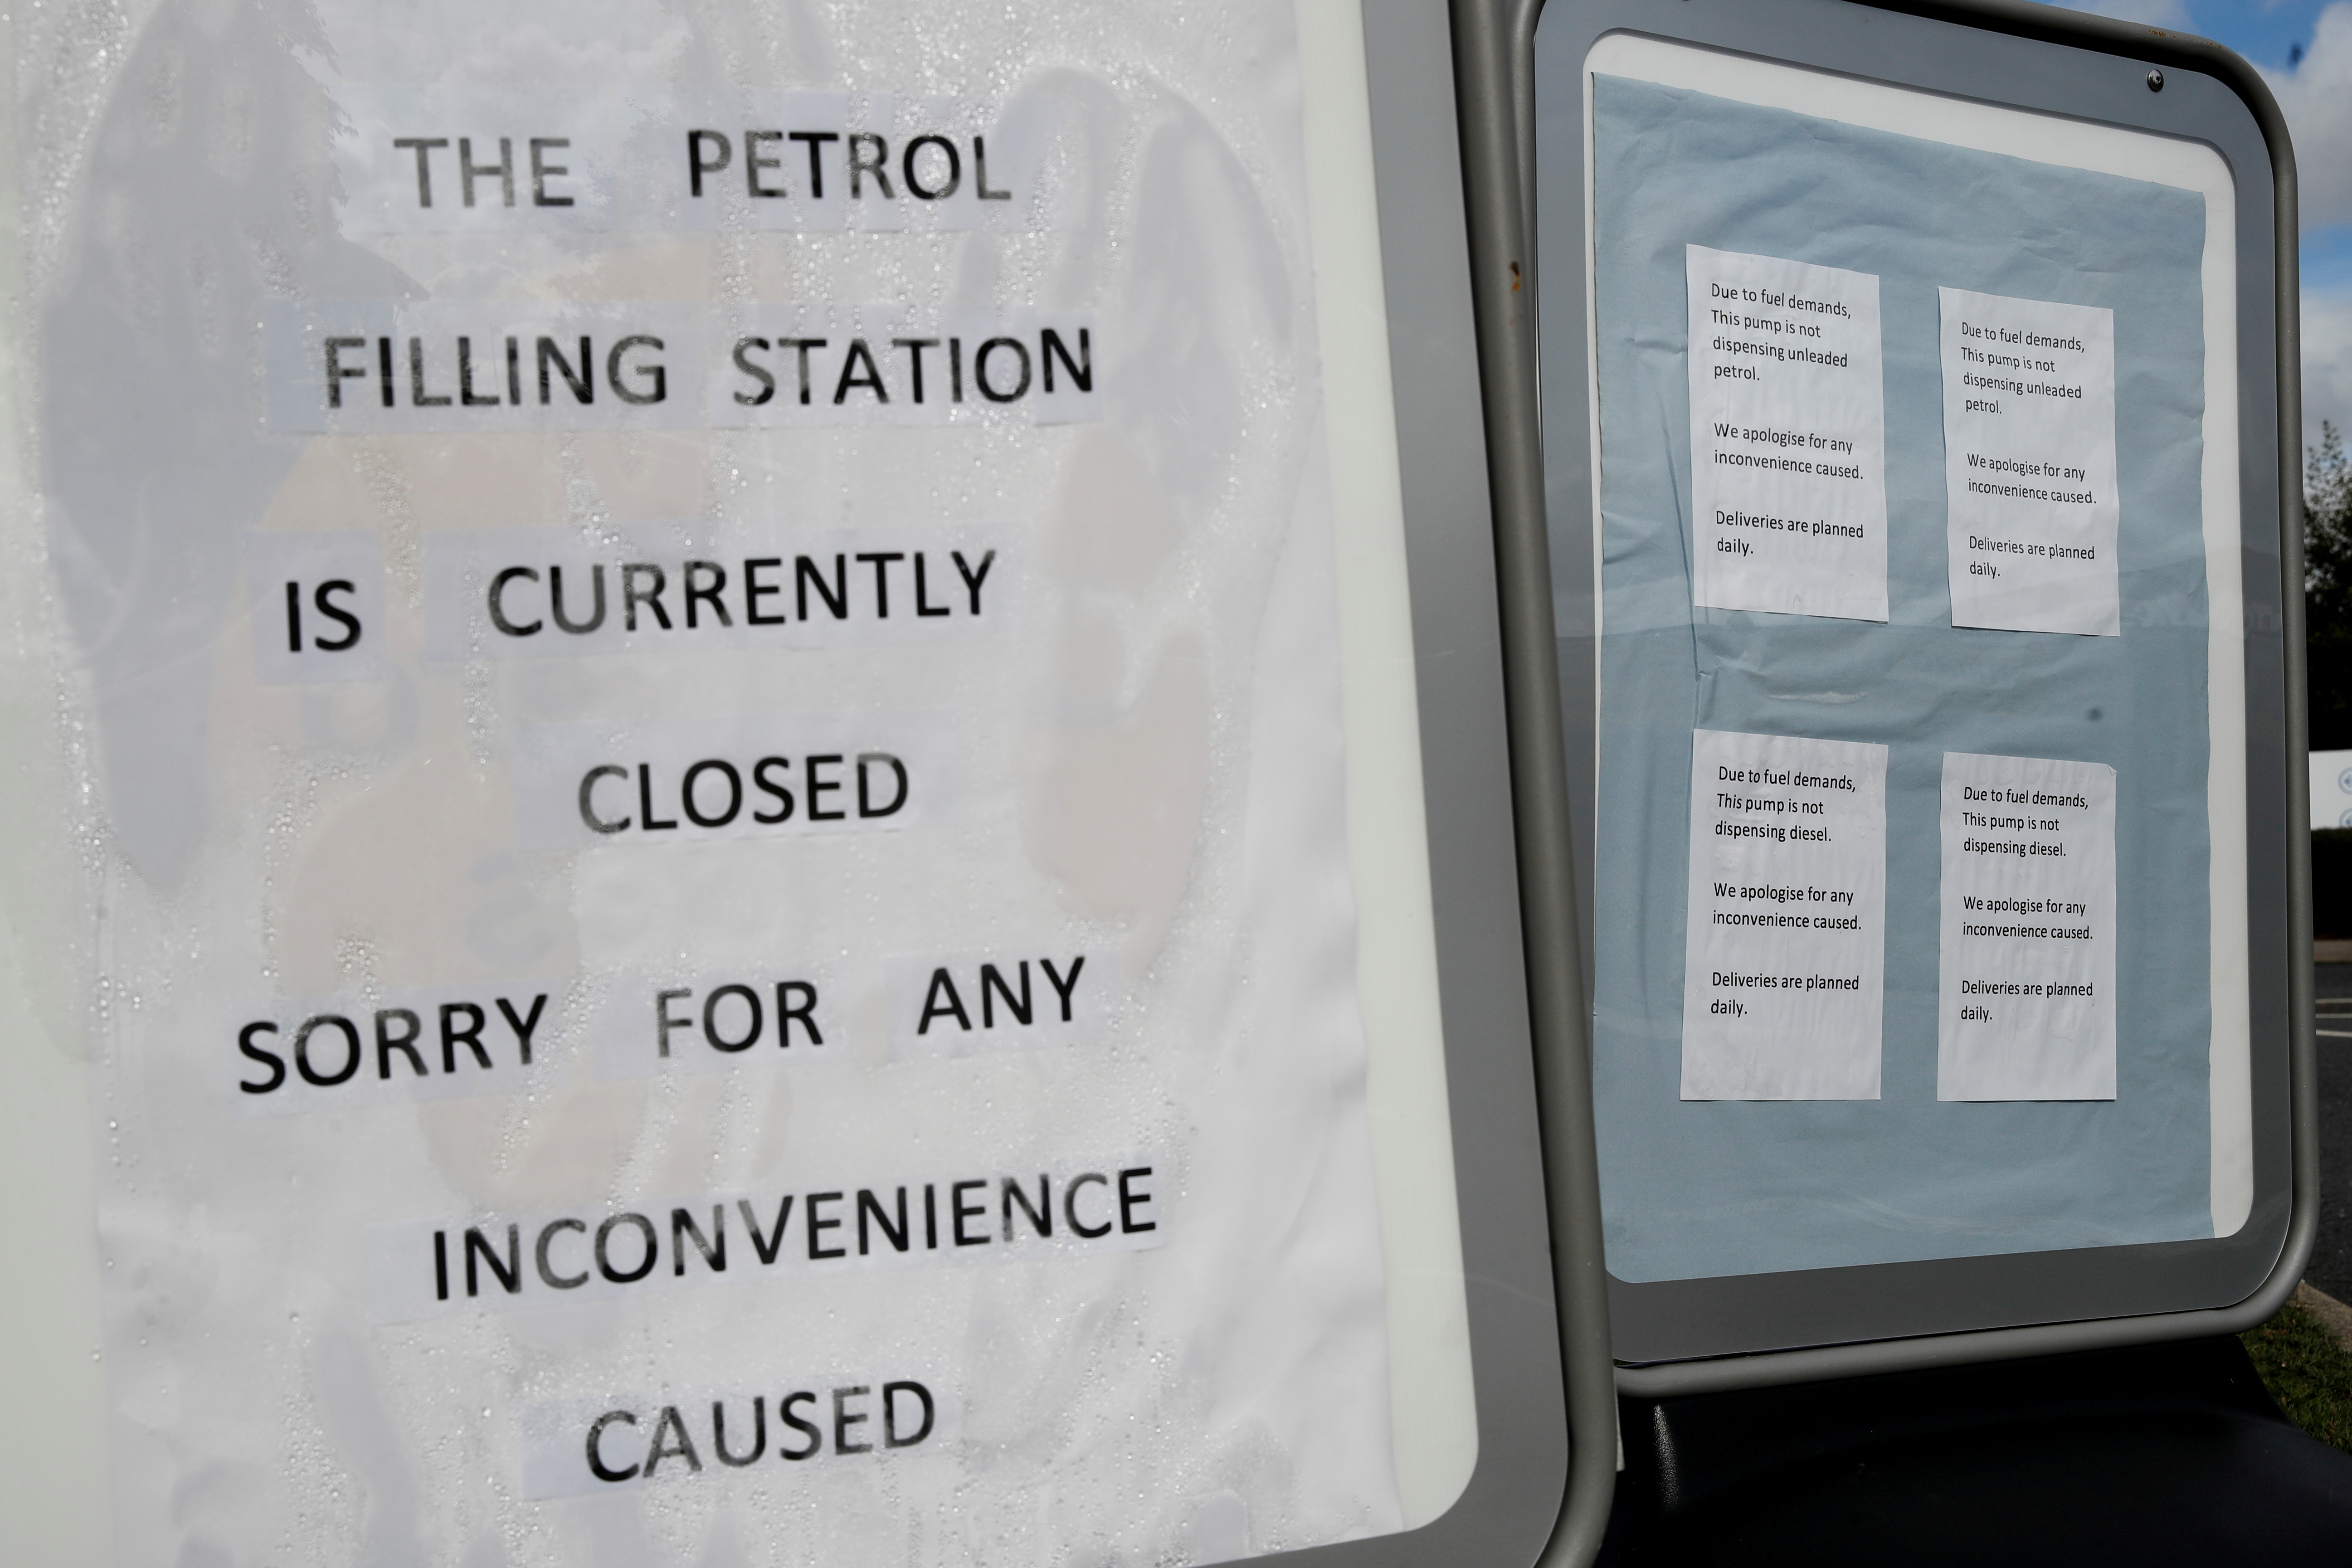 Signs outside a Tesco petrol station that has run out of fuel, are pictured in Hemel Hempstead, Britain, October 4, 2021. REUTERS/Paul Childs/File Photo